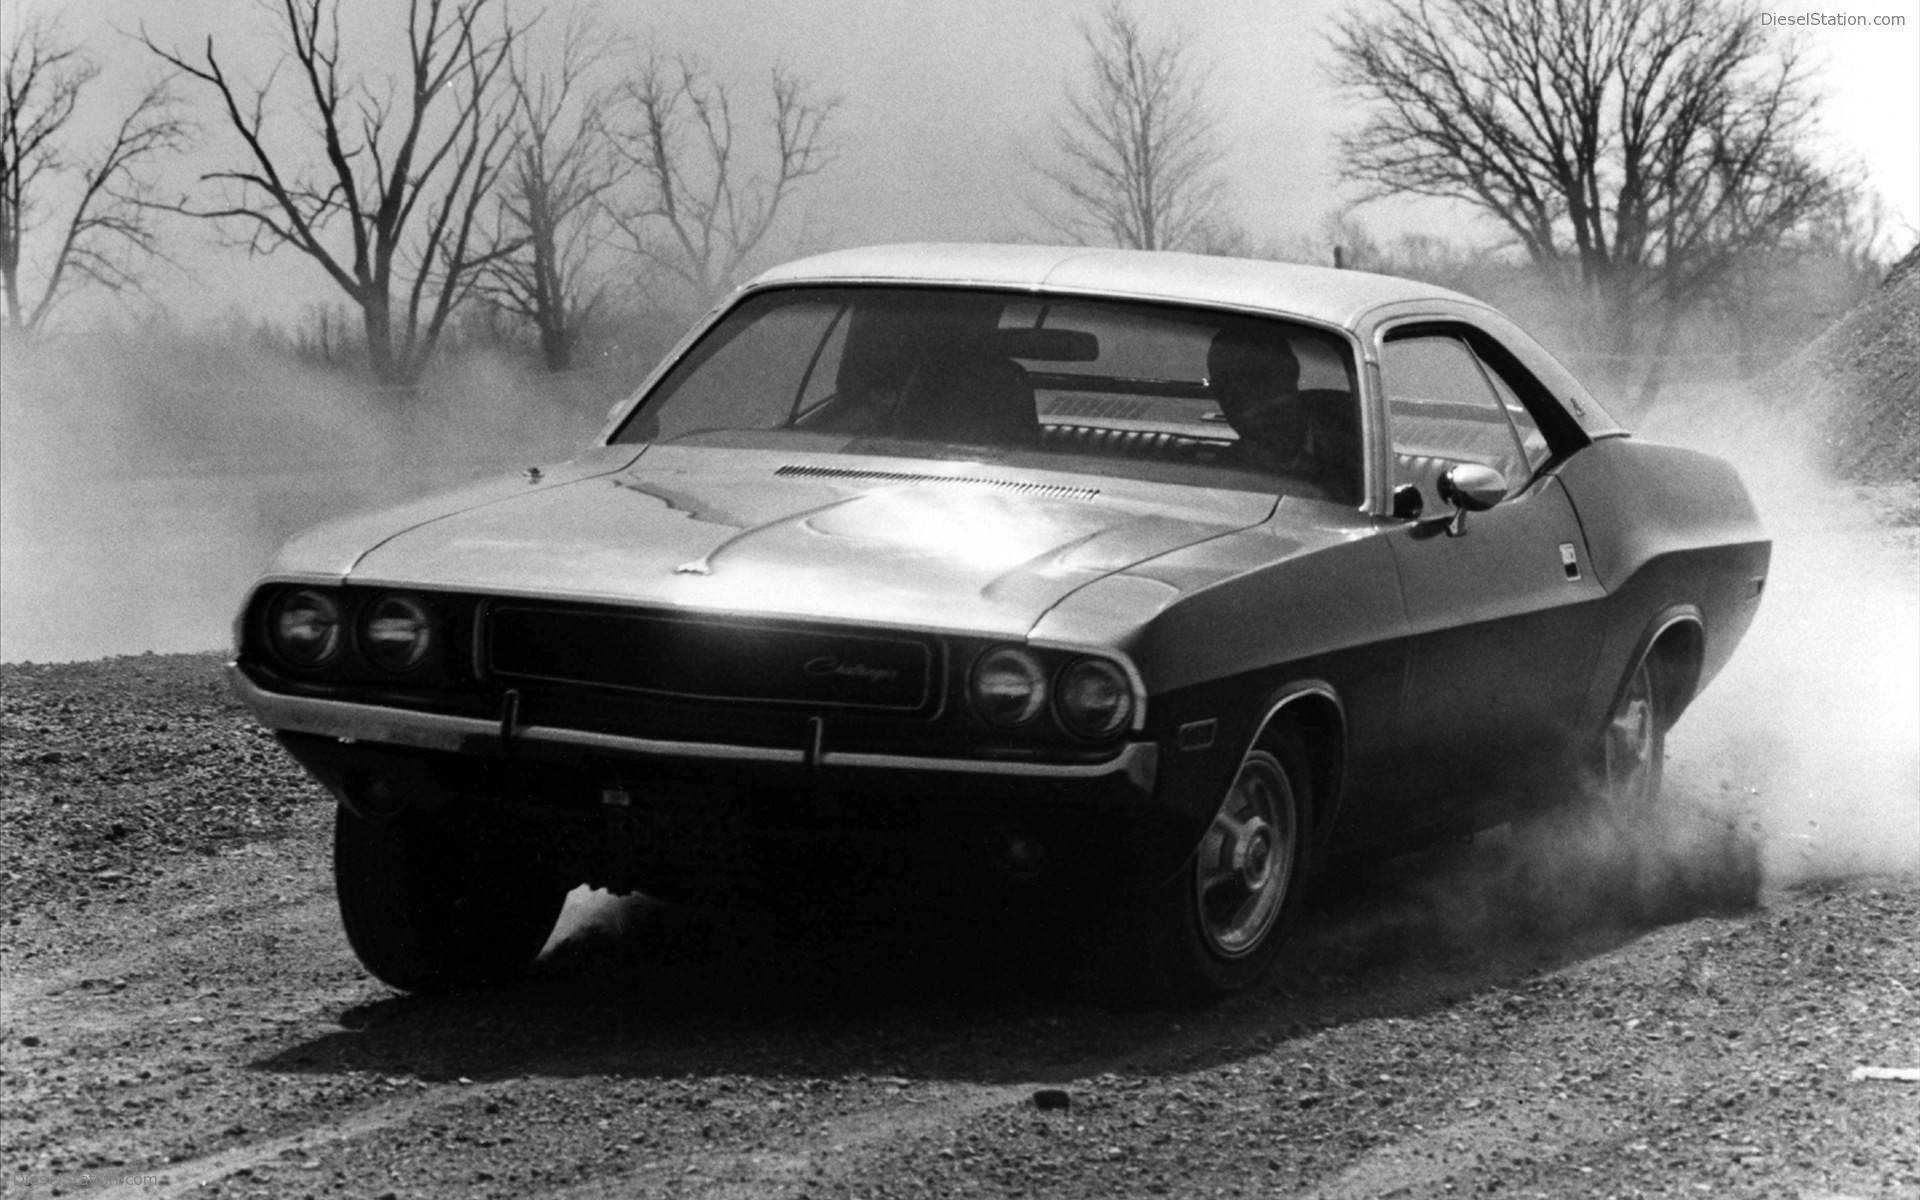 1970 dodge challenger HD Wallpaper Background Image 1920x1200 1920x1200